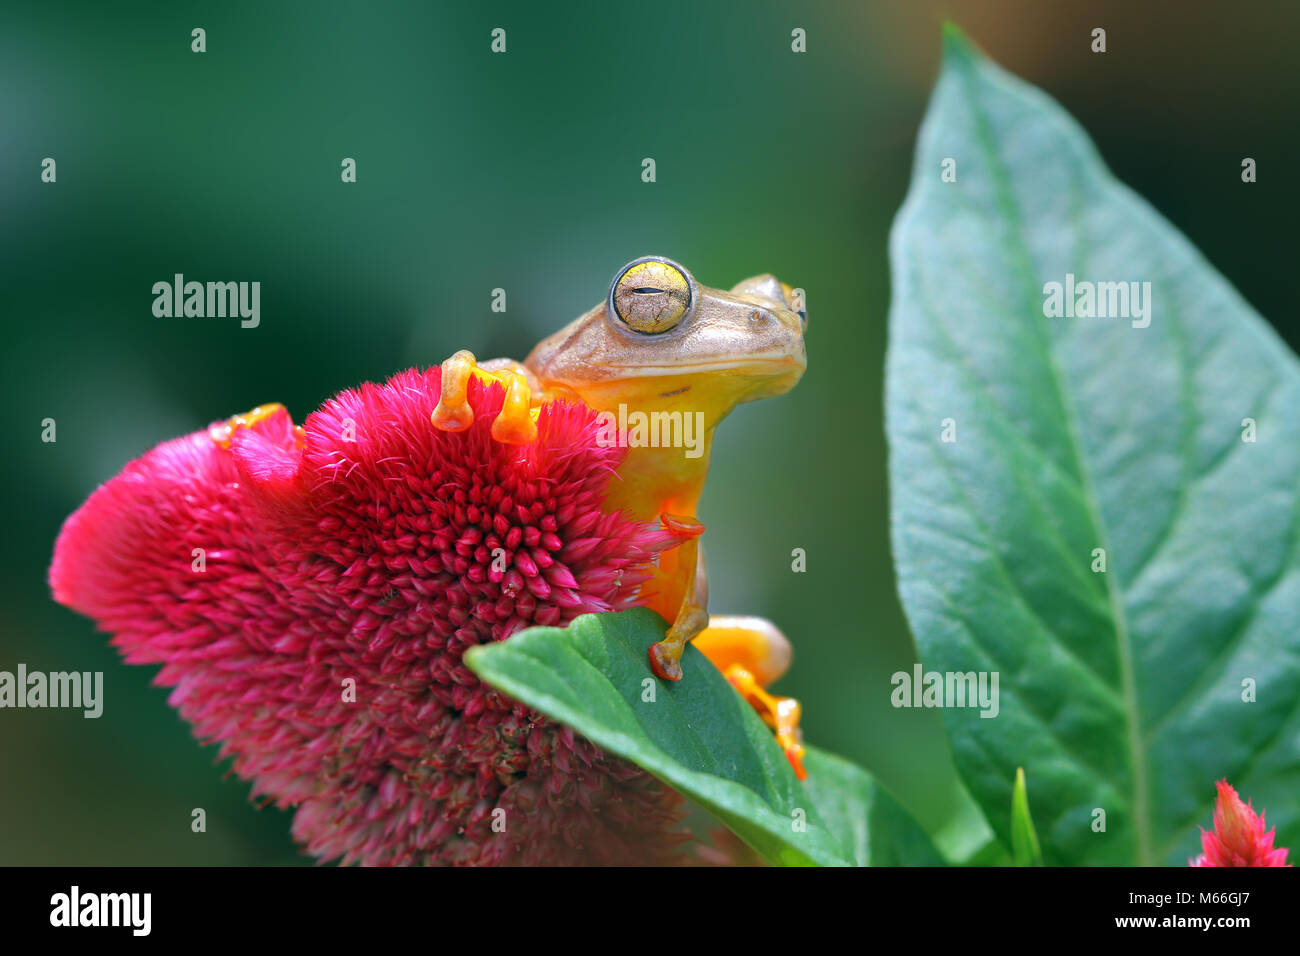 Harlequin tree frog on a flower,Indonesia - Stock Image